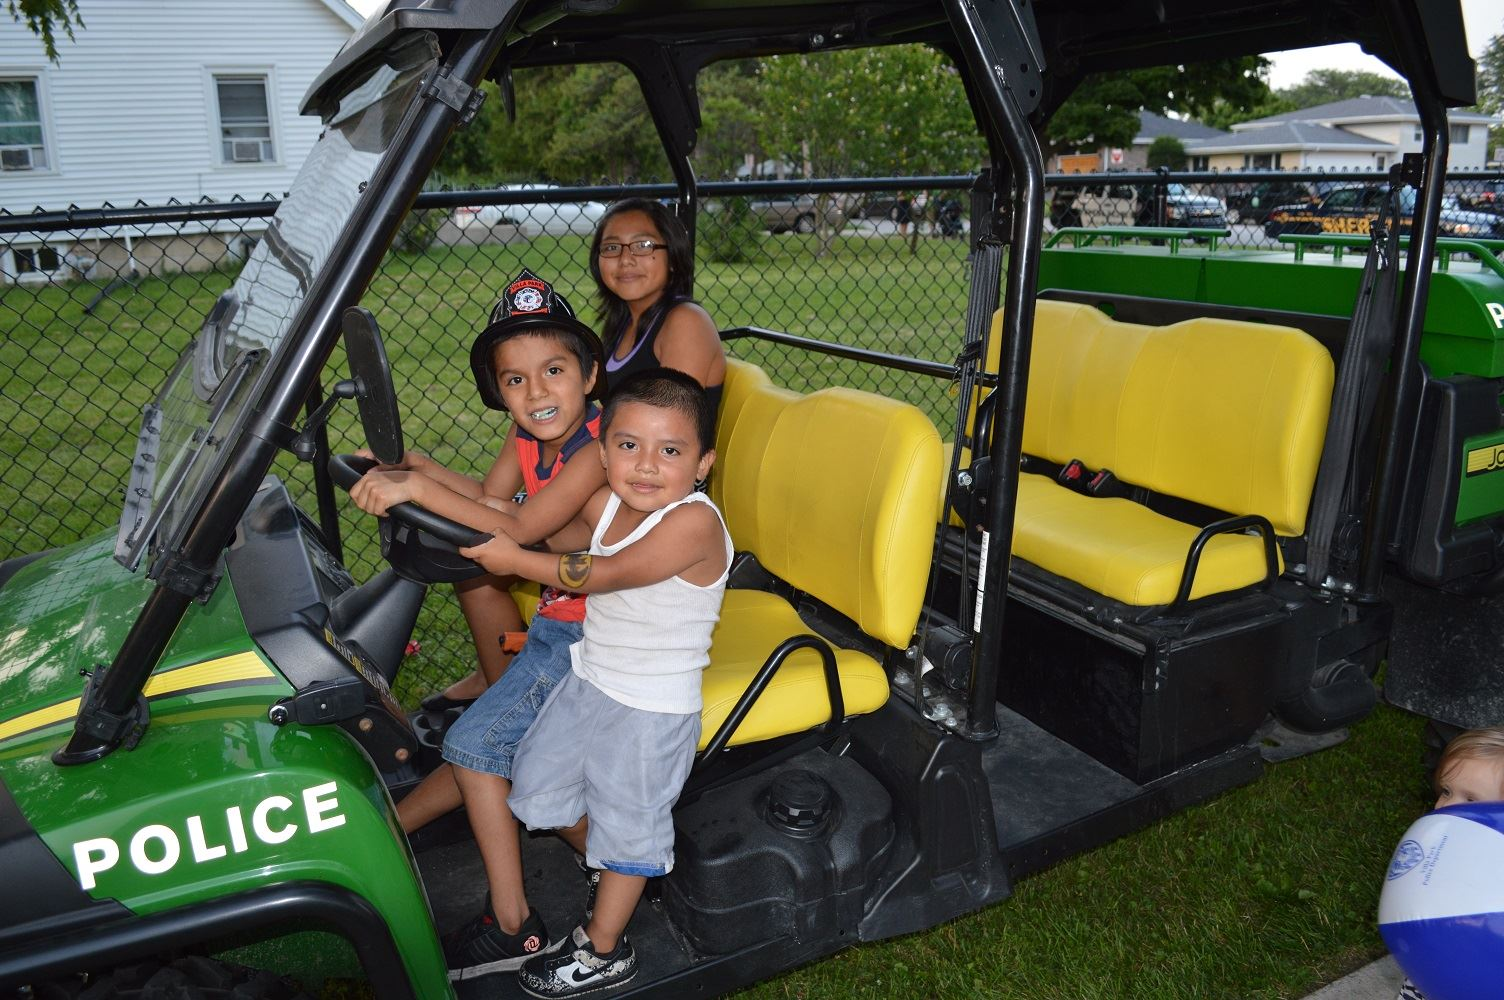 Three children check out the front seat of the Villa Park Police Gator vehicle during a National Night Out event at the Iowa Community Center, Aug. 2.